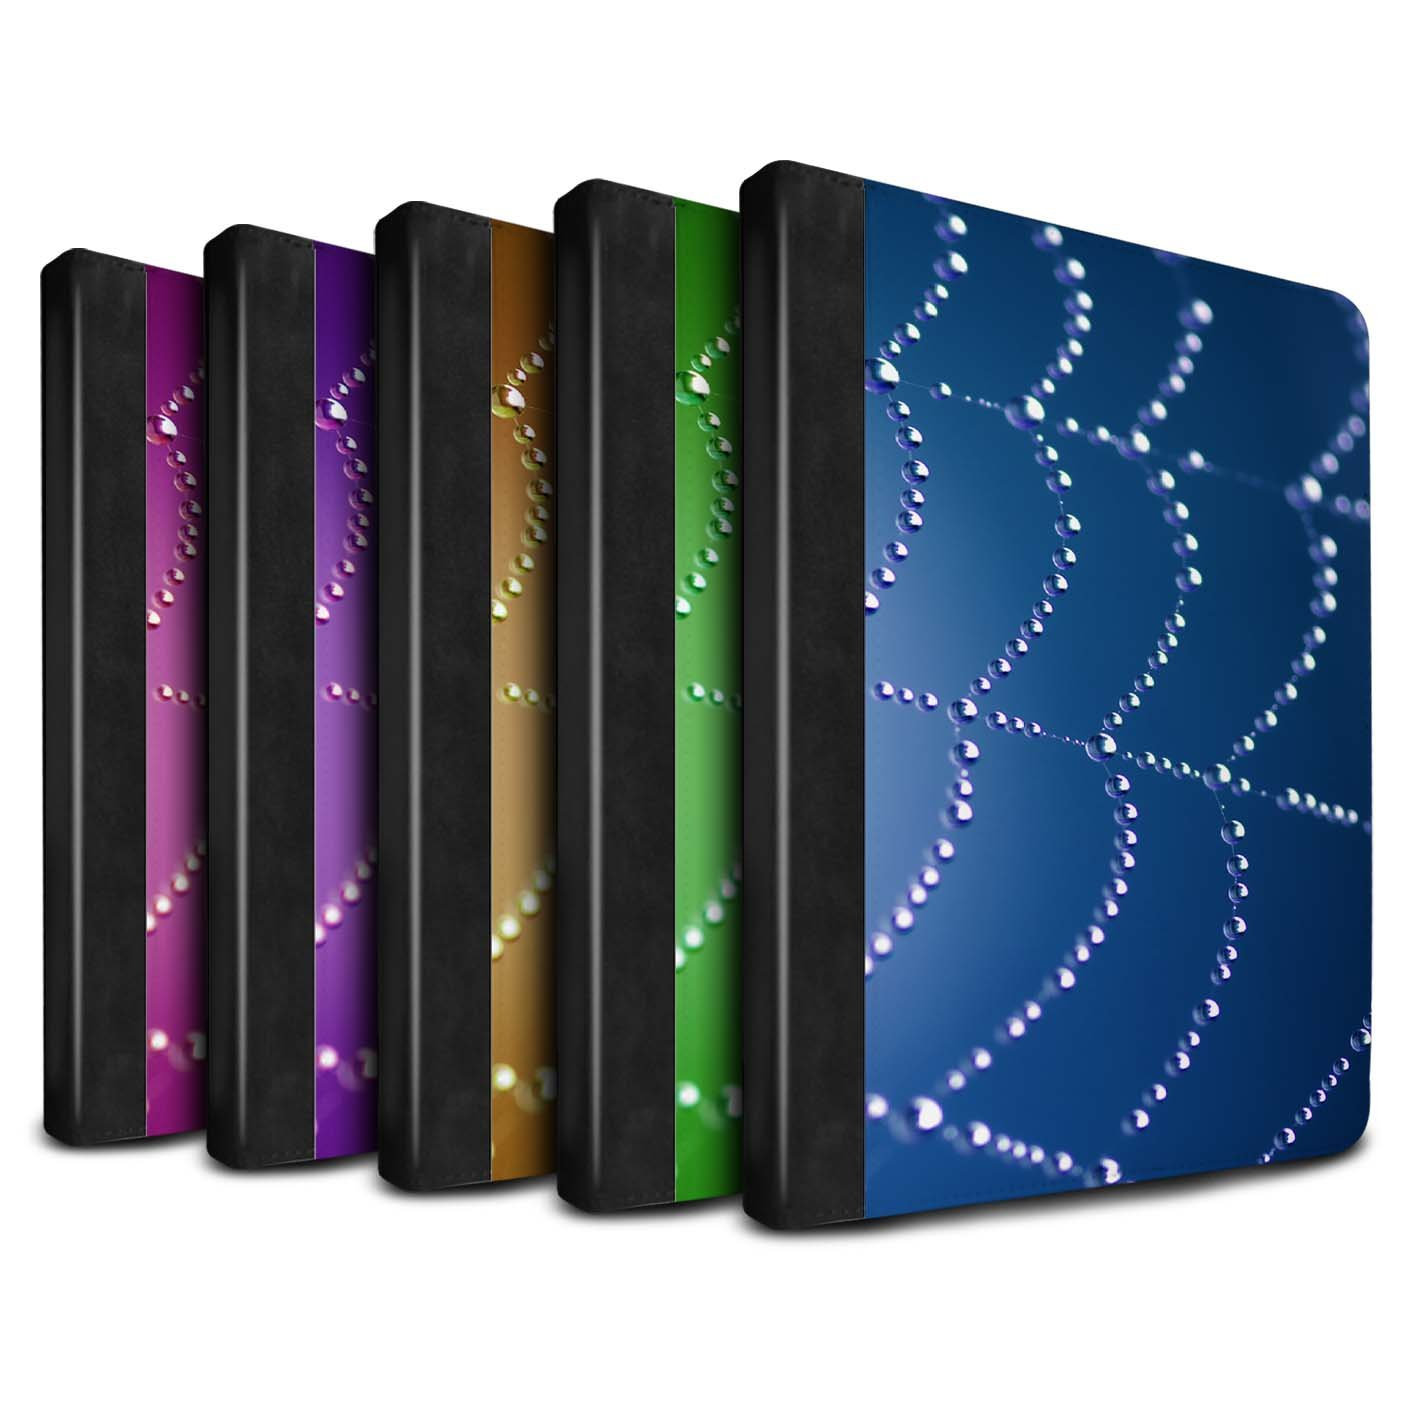 STUFF4 PU Leather Book/Cover Case for Apple iPad 9.7 (2017) tablets / Pack (7 pk) Design / Spider Web Pearls Collection